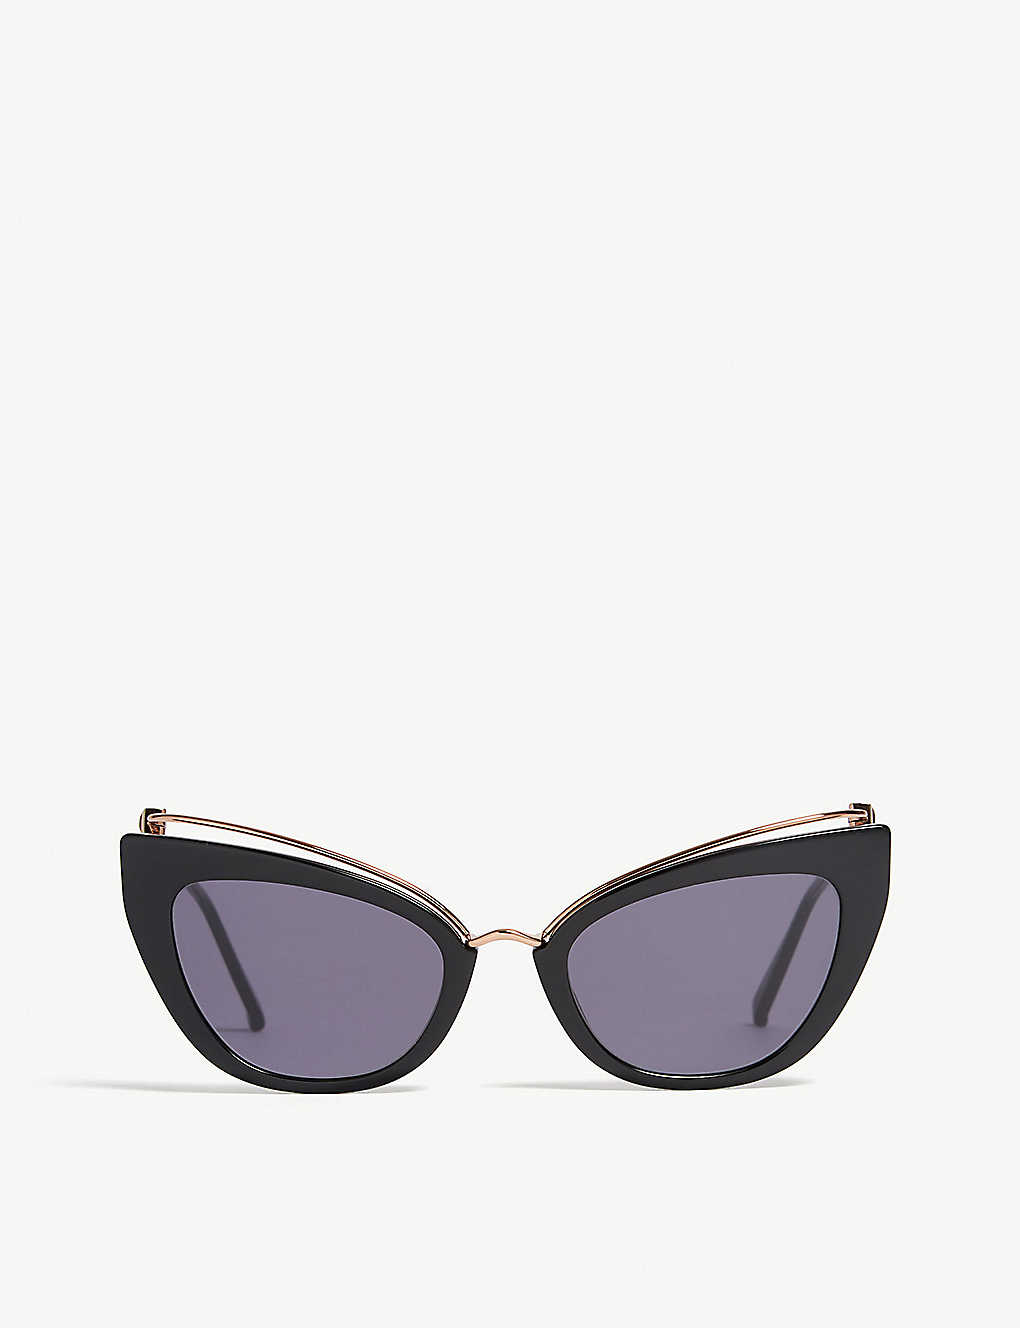 7bc9f78cdb95 MAX MARA - Marilyn cat-eye-frame sunglasses | Selfridges.com